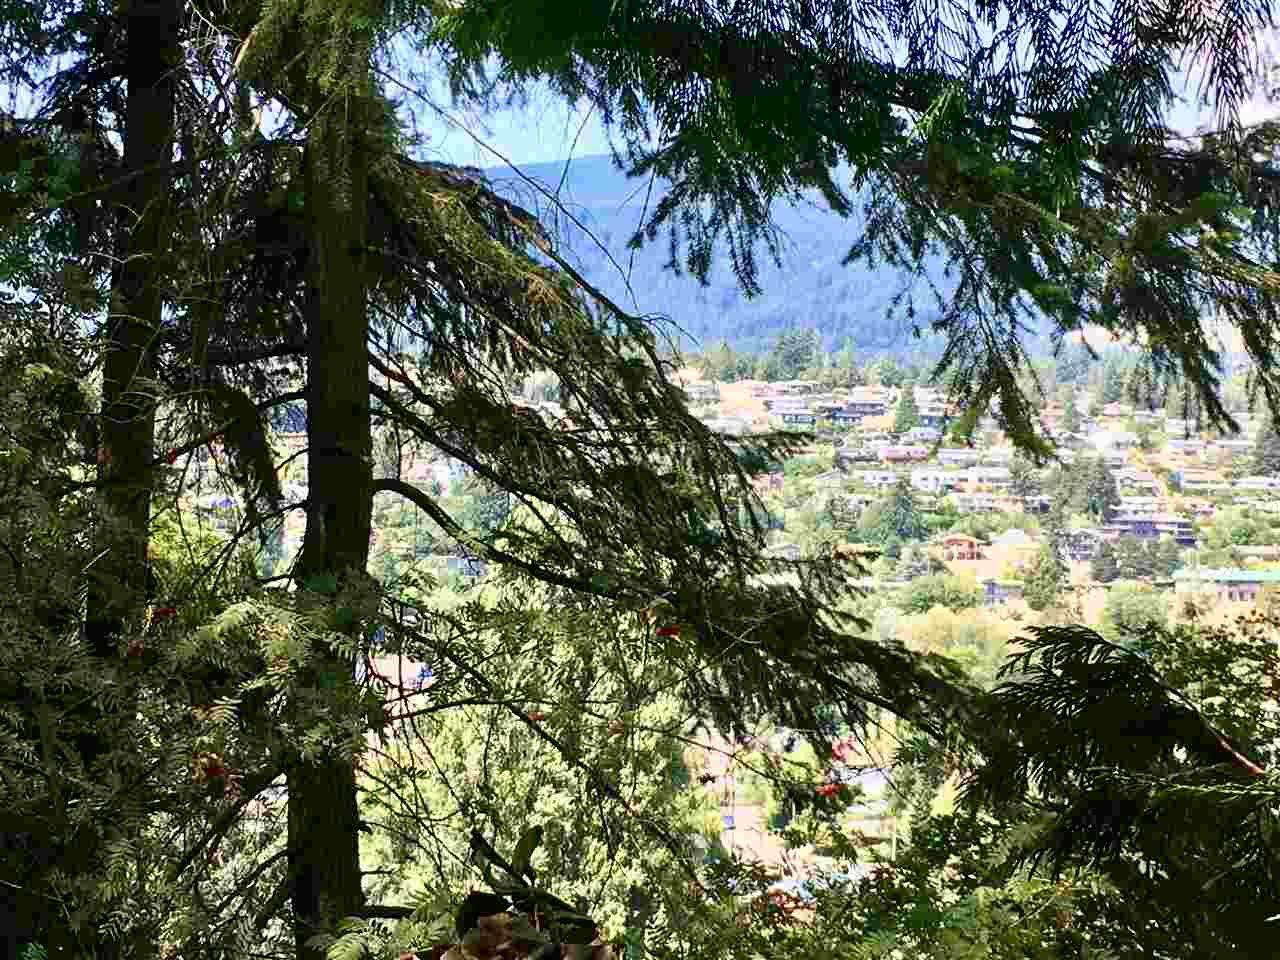 Main Photo: LOT A SKYLINE Drive in Gibsons: Gibsons & Area Land for sale (Sunshine Coast)  : MLS®# R2396072